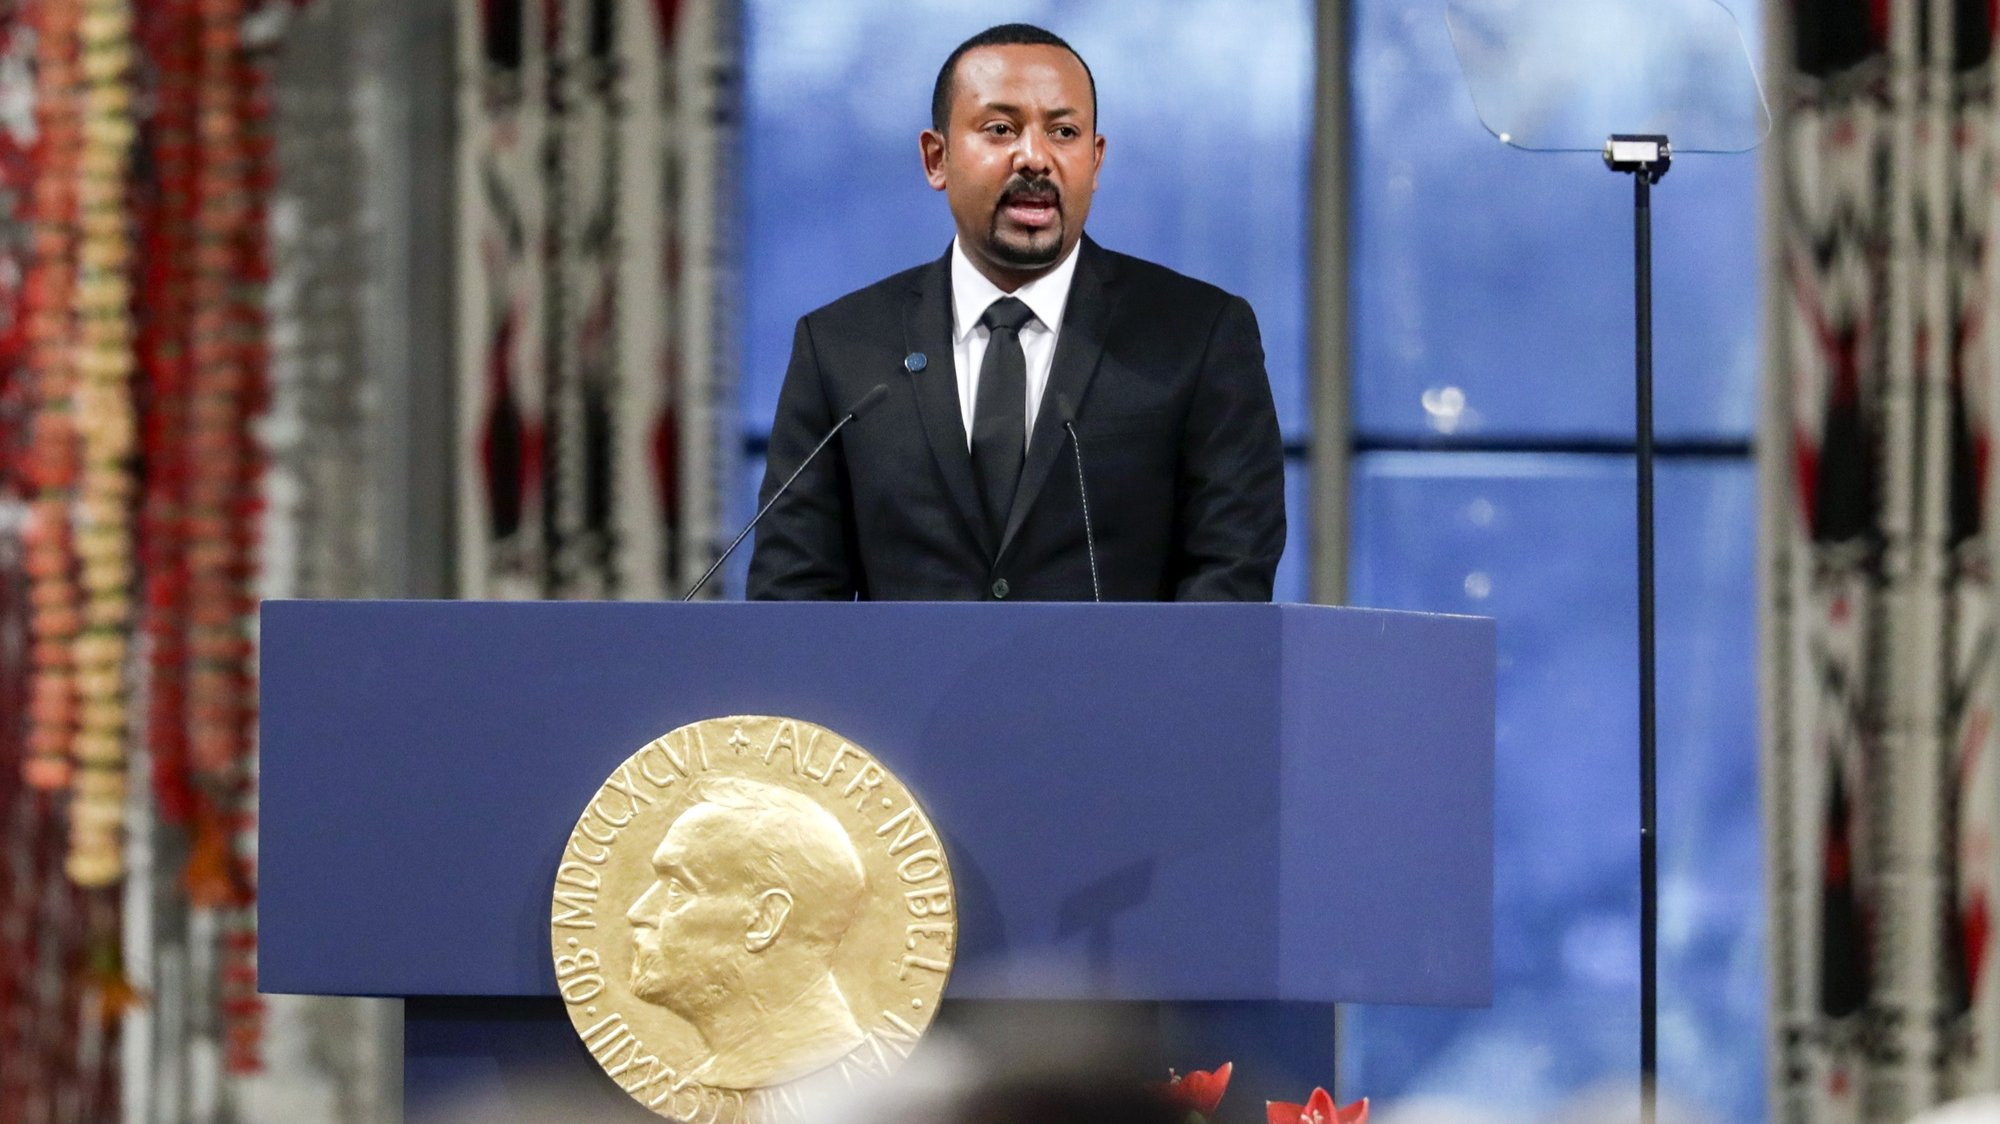 epa08059602 Ethiopian Prime Minister Abiy Ahmed Ali, the 2019 Nobel Peace Prize laureate, gives his acceptance speech during the awarding ceremony in Oslo, Norway, 10 December 2019.  EPA/Stian Lysberg Solum  NORWAY OUT